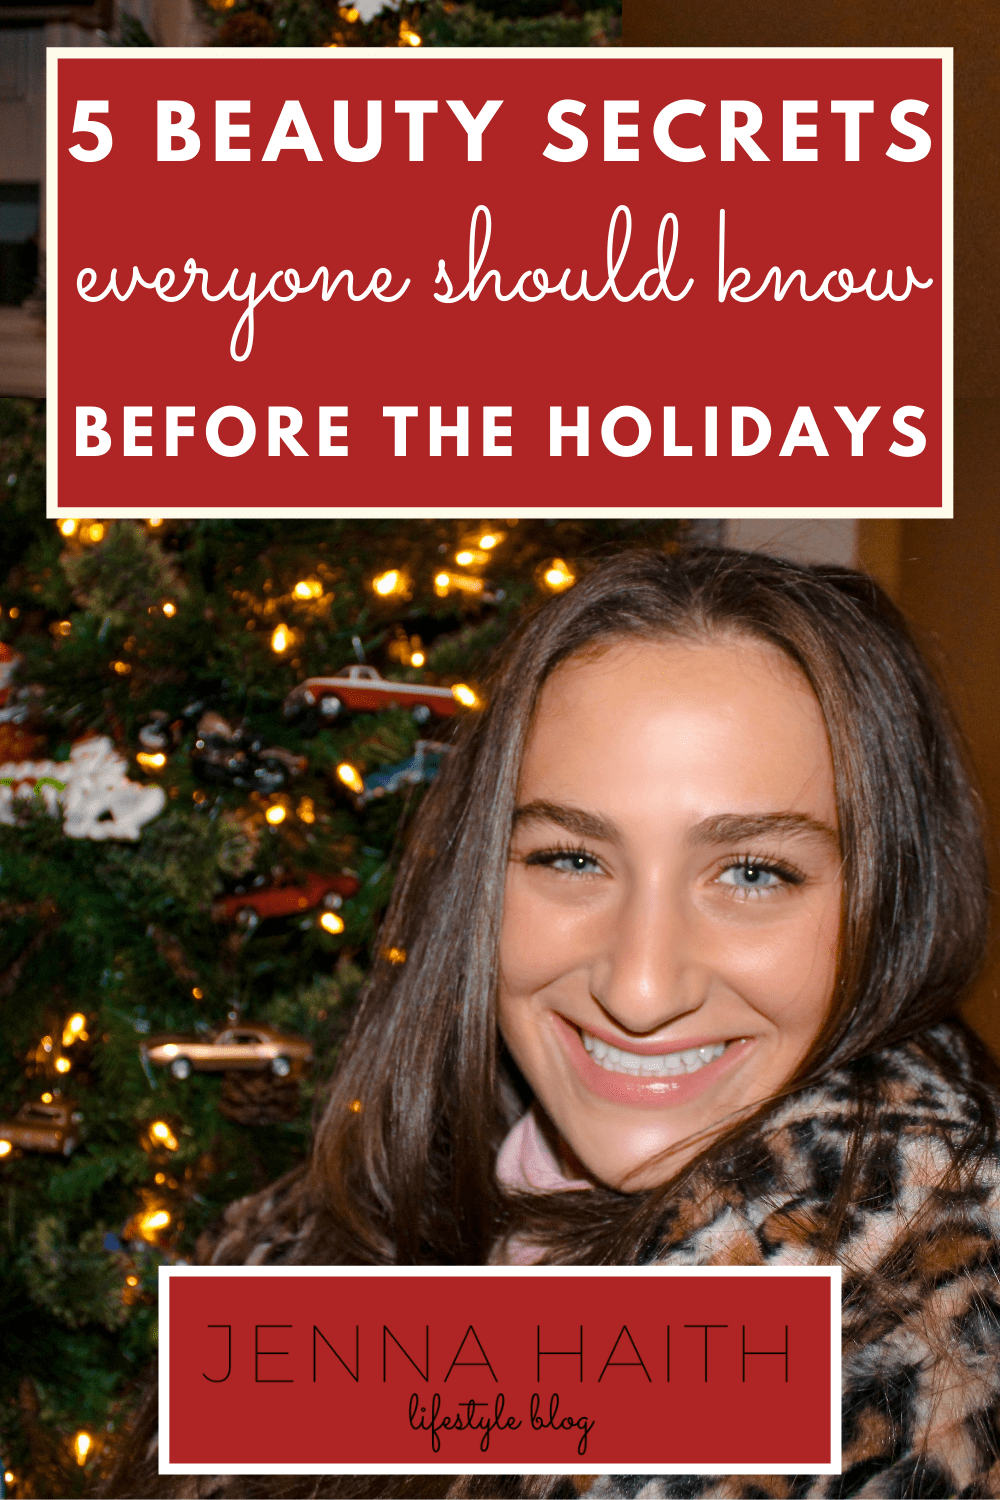 5 Beauty Secrets Everyone Should Know Before The Holidays